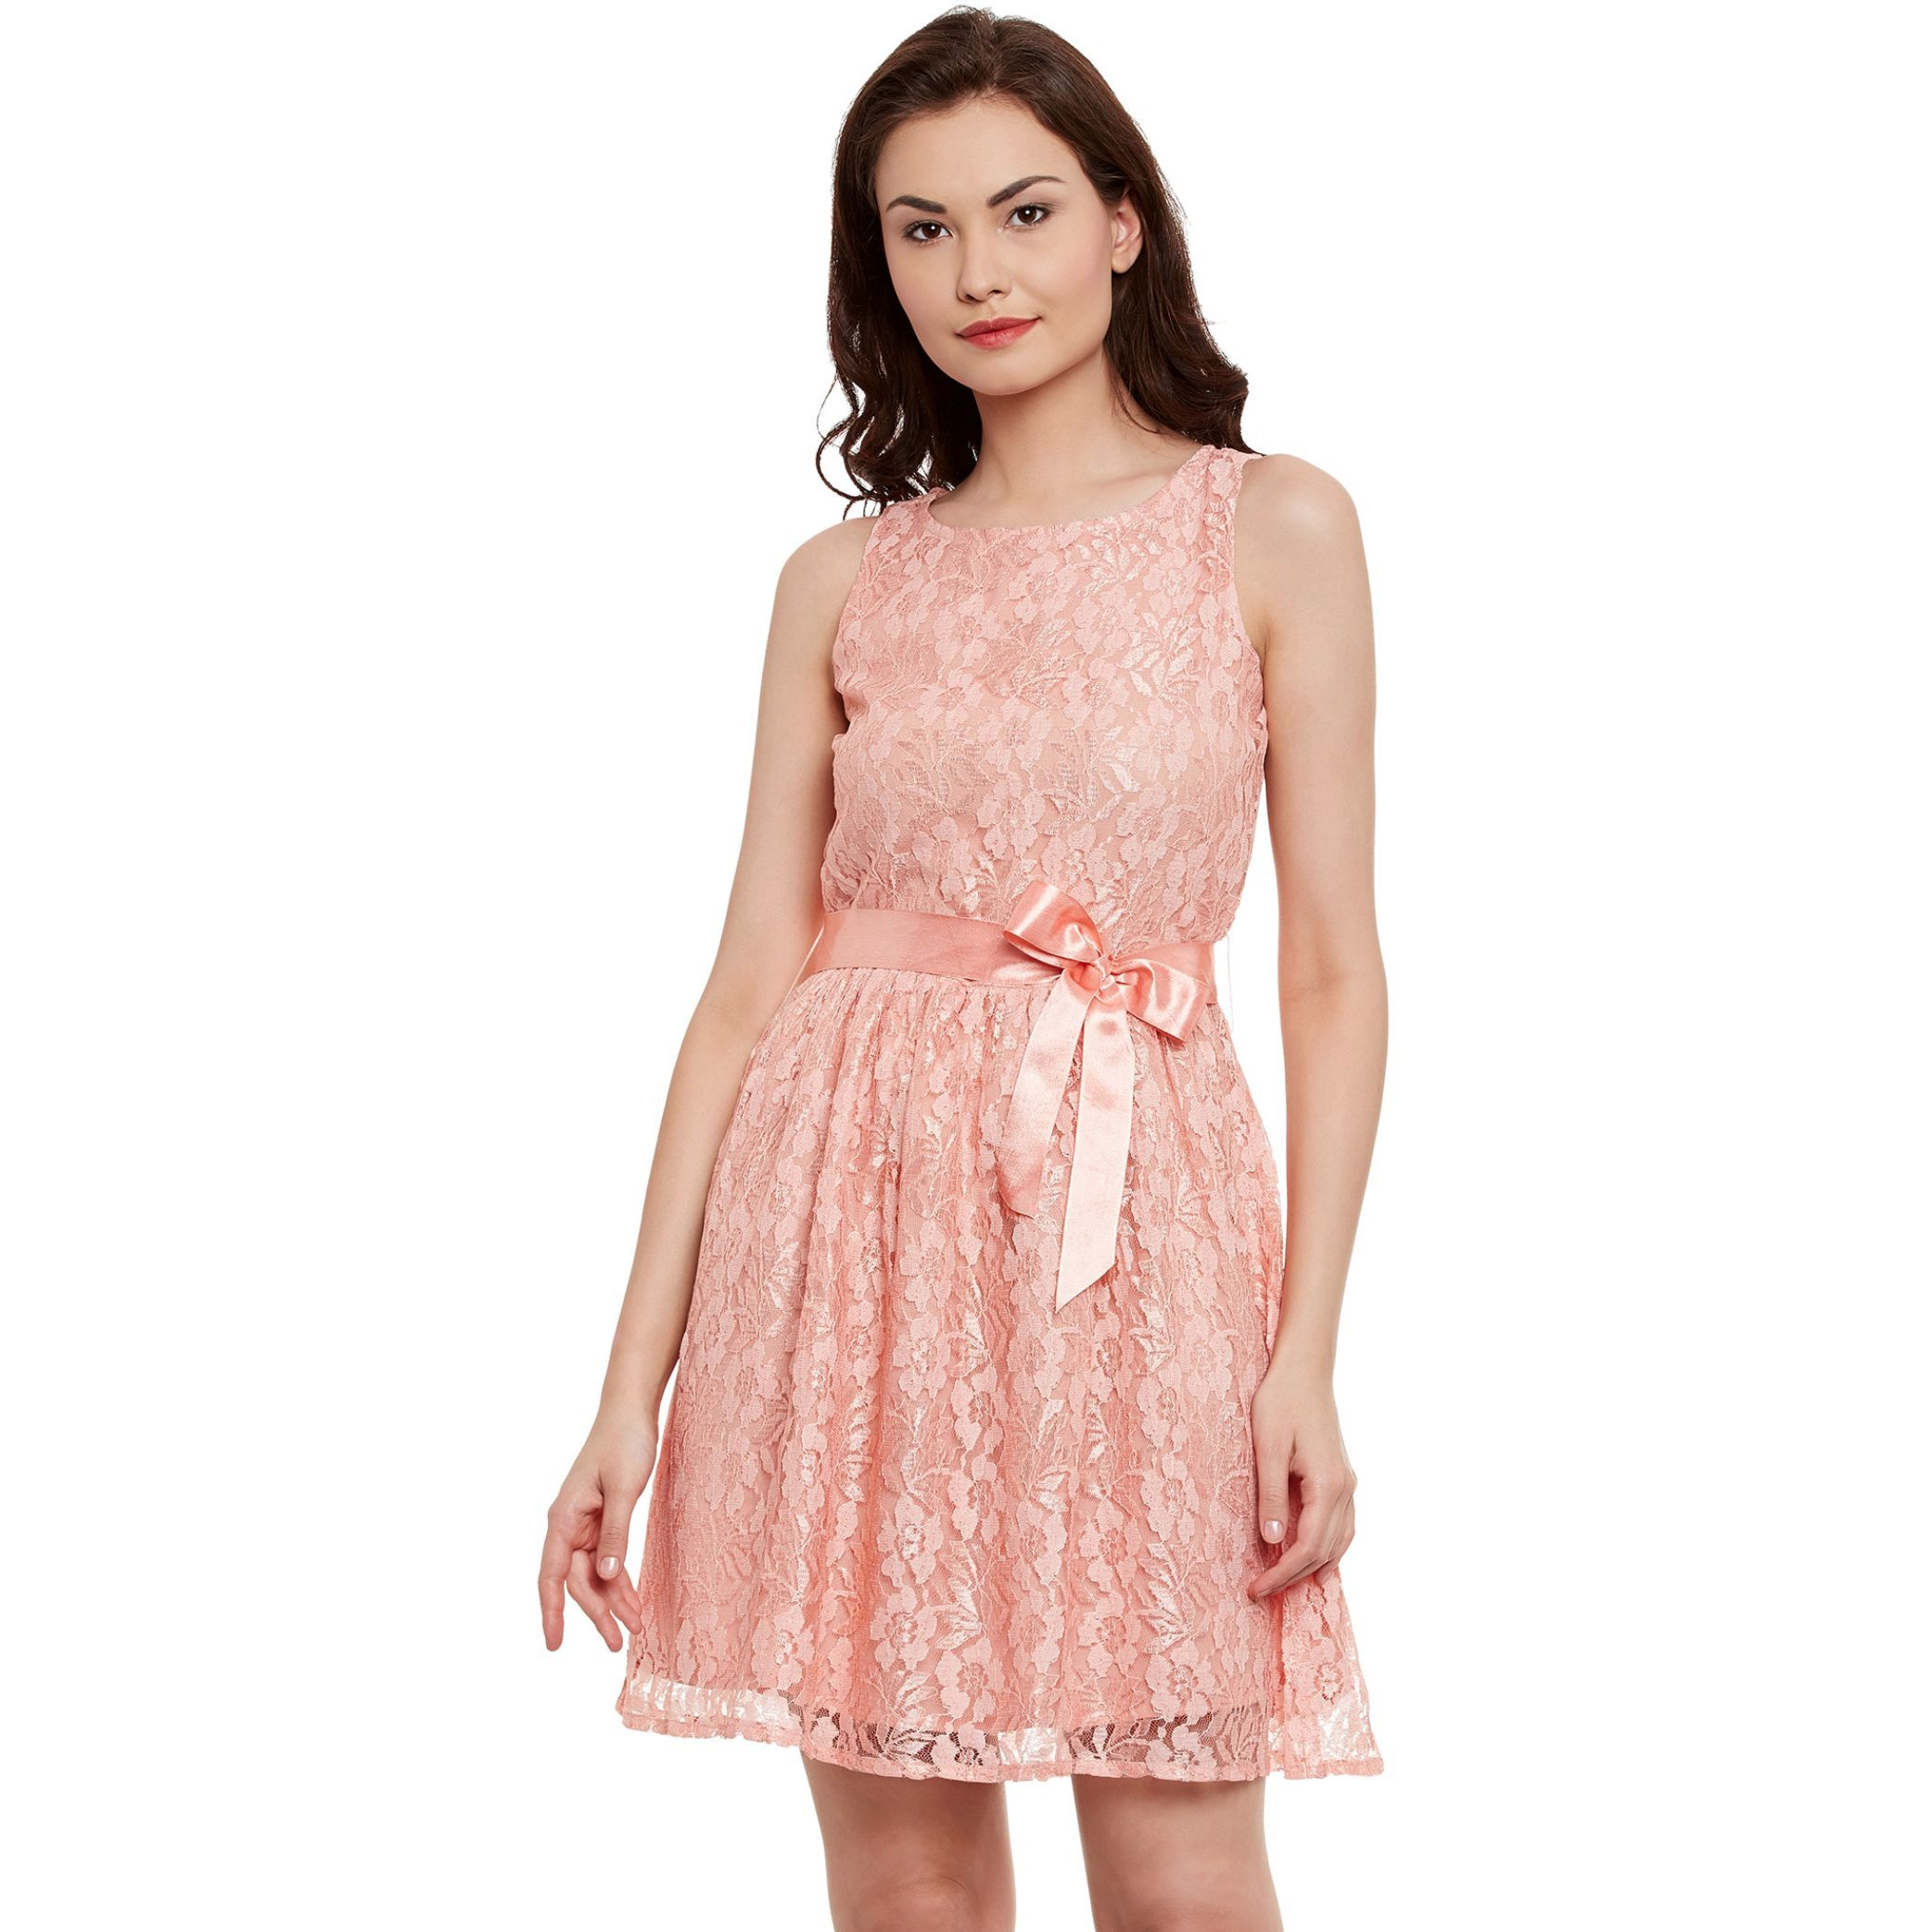 Nylon Lace Dress In Peach Color With Shantoon Lining Size L